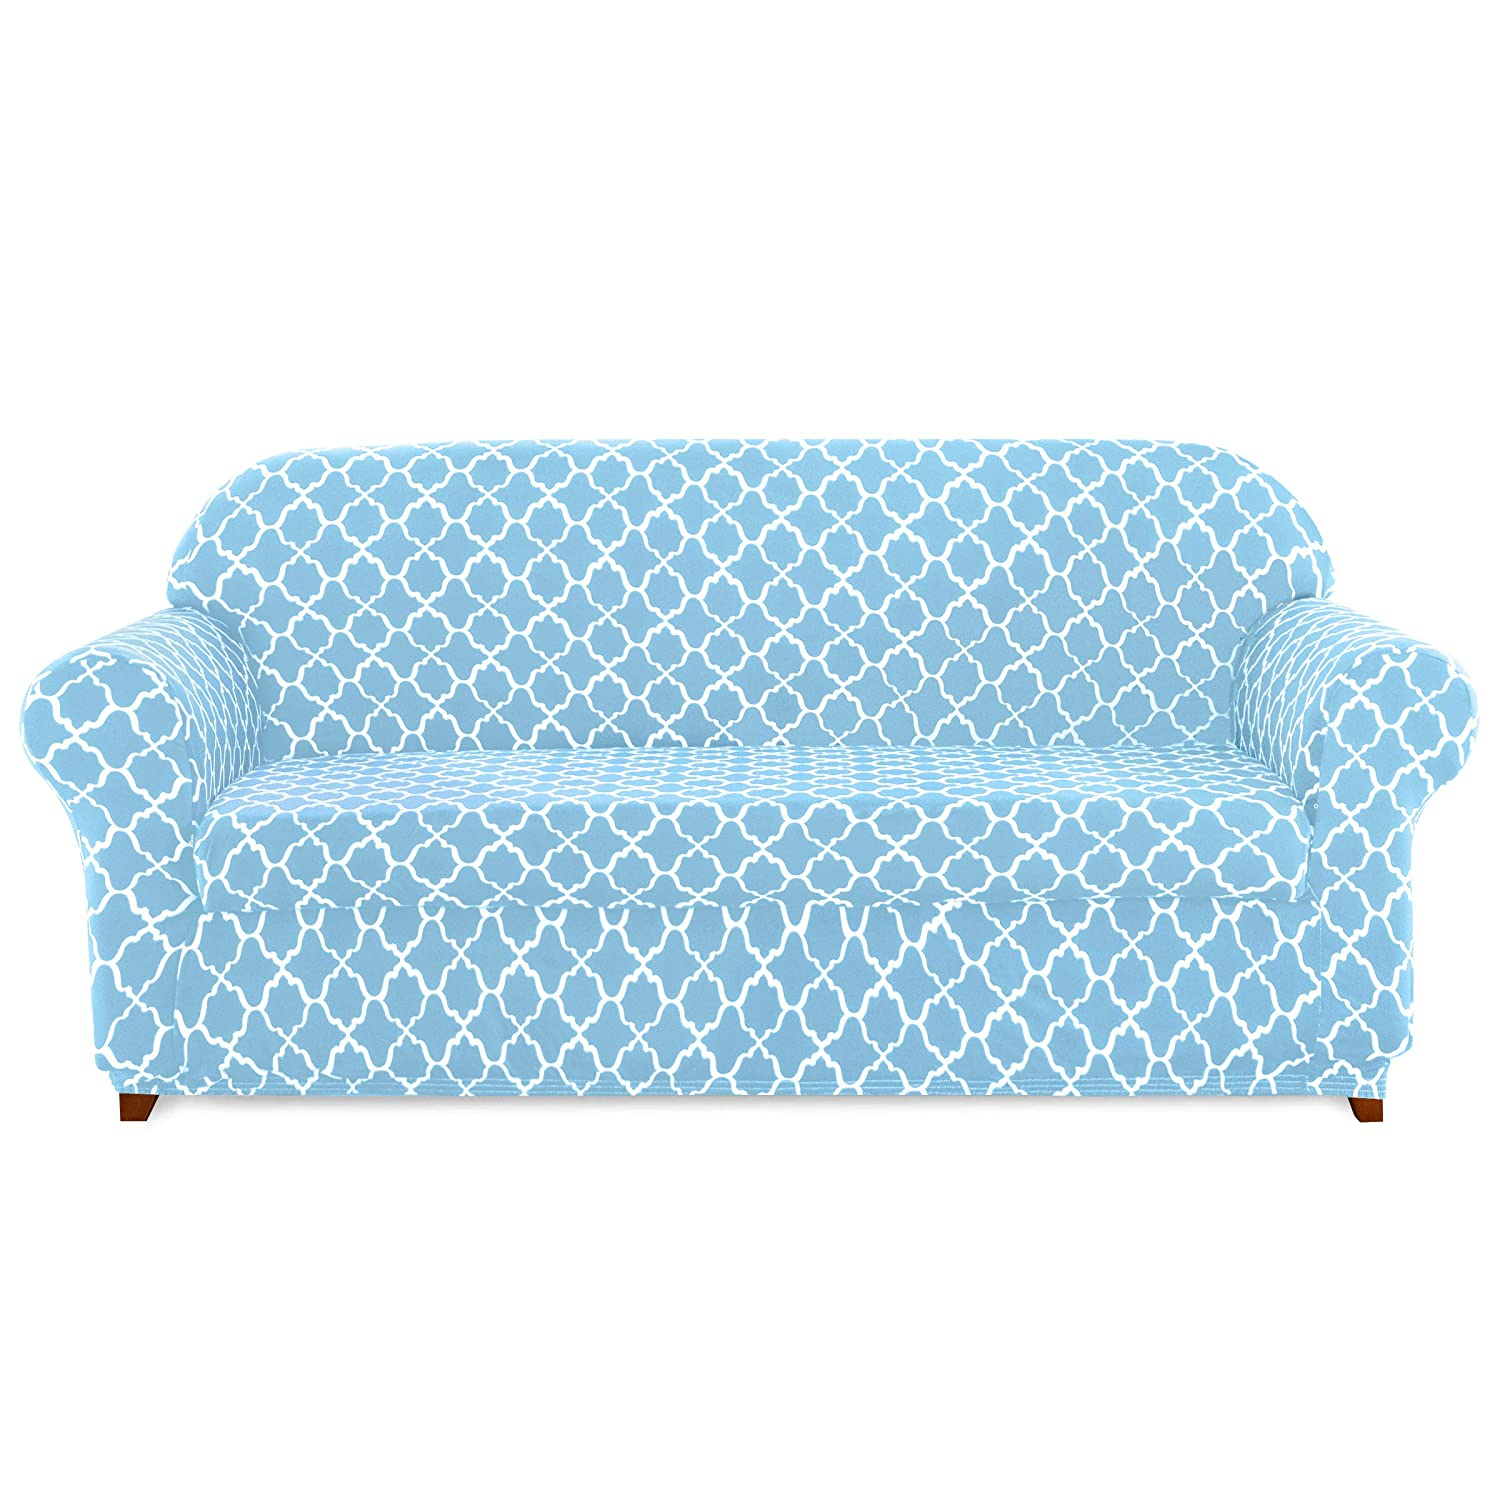 subrtex Loveseat Slipcovers Stretch Couch Protector 2-Piece Spandex Printing Furniture Cover Home Decor(Blue)